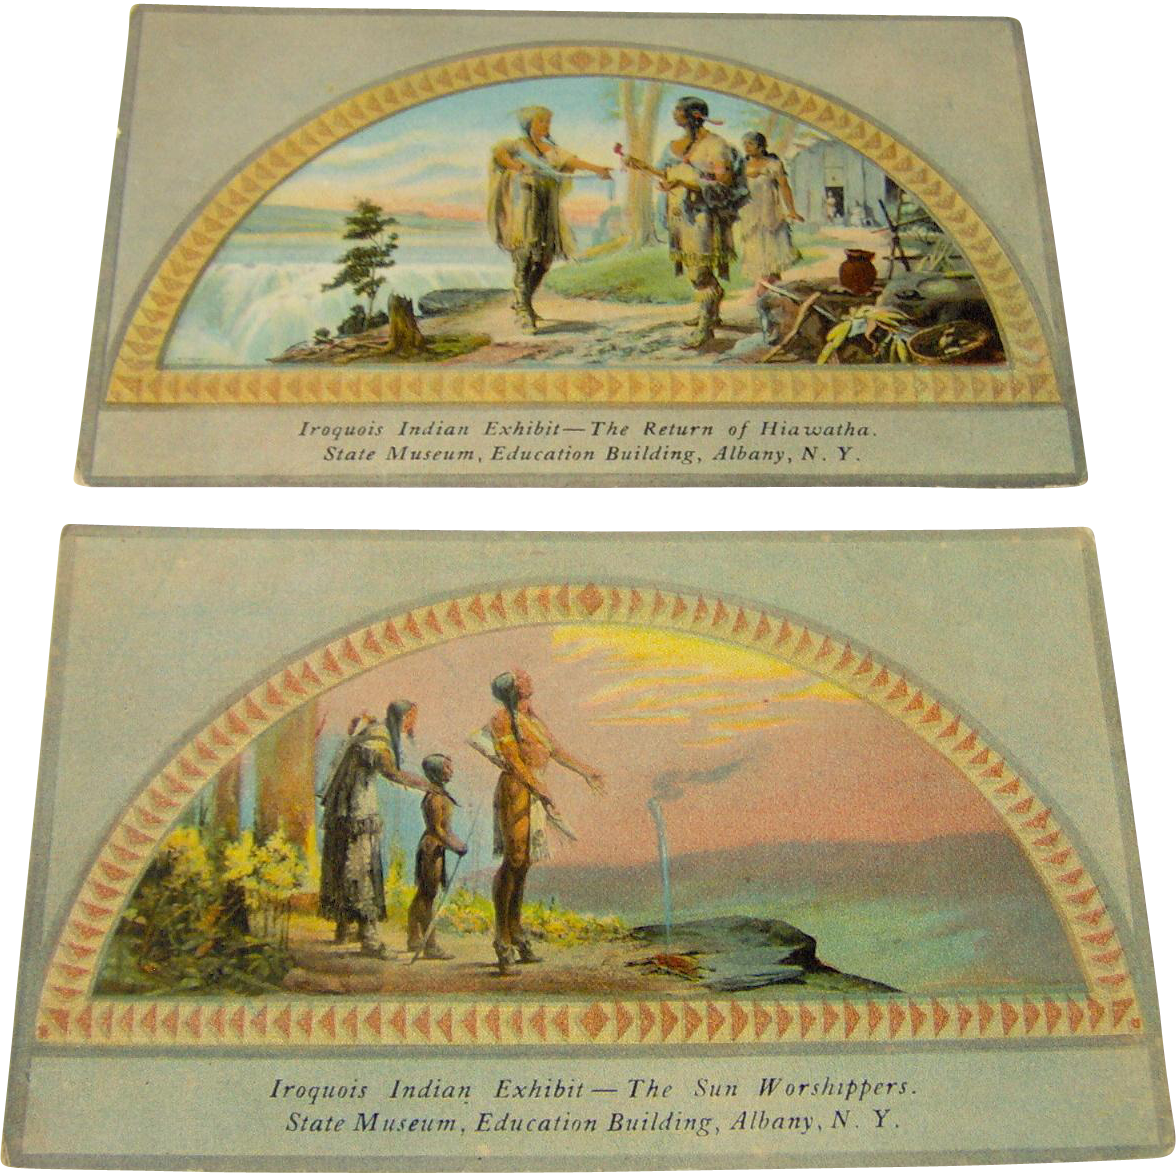 Vintage Iroquois Indian Exhibit Postcards